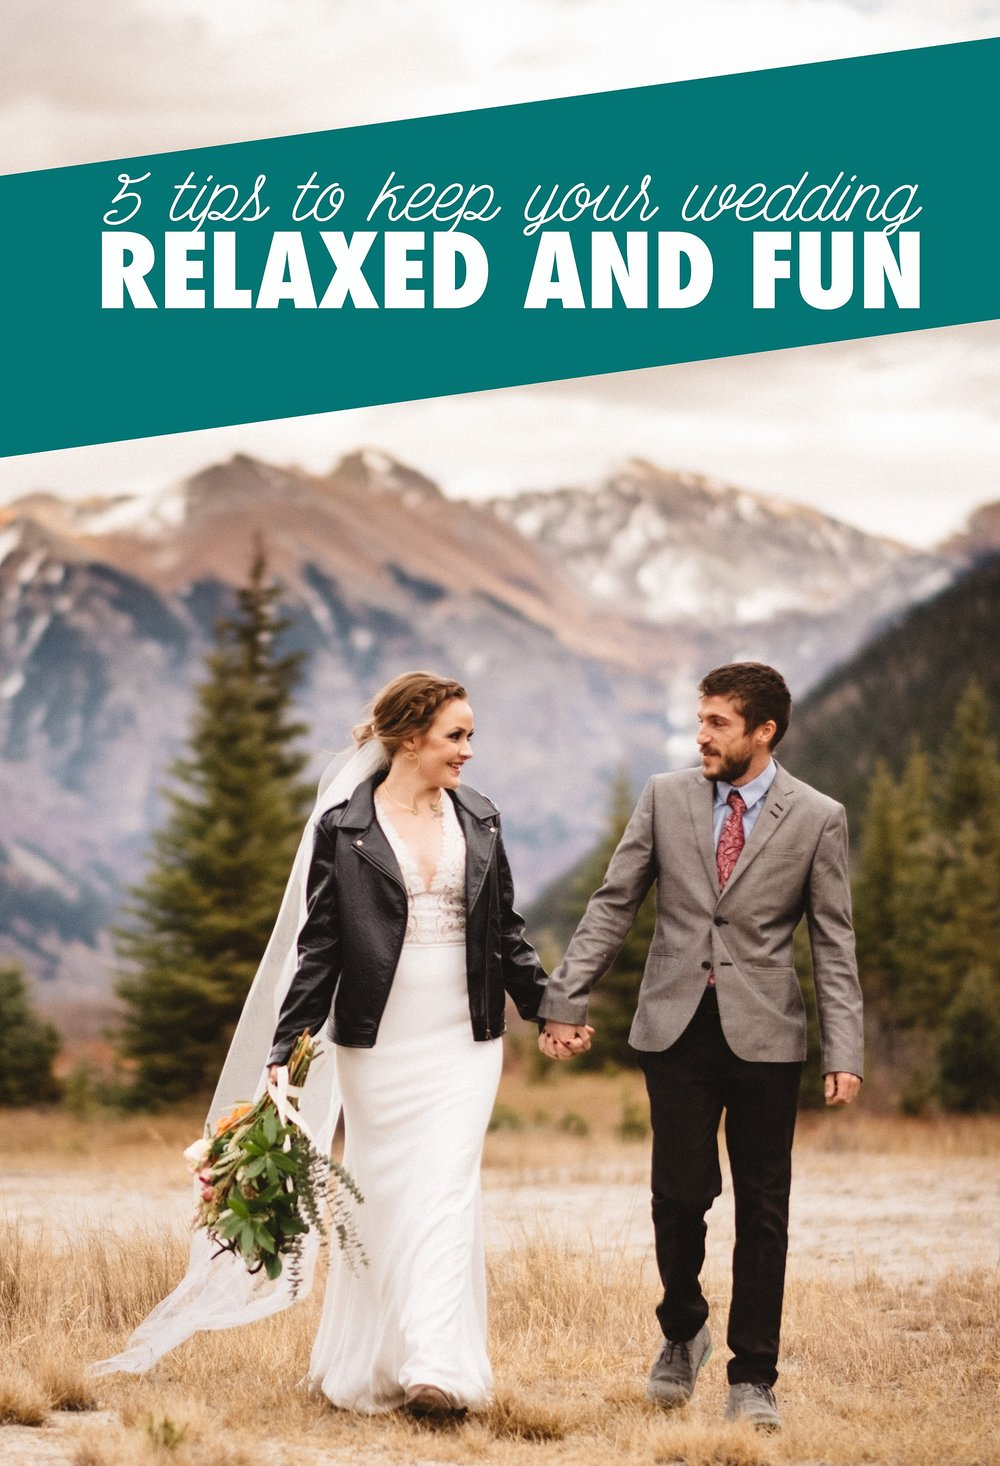 keep-your-wedding-relaxed-and-fun_WEB.jpg